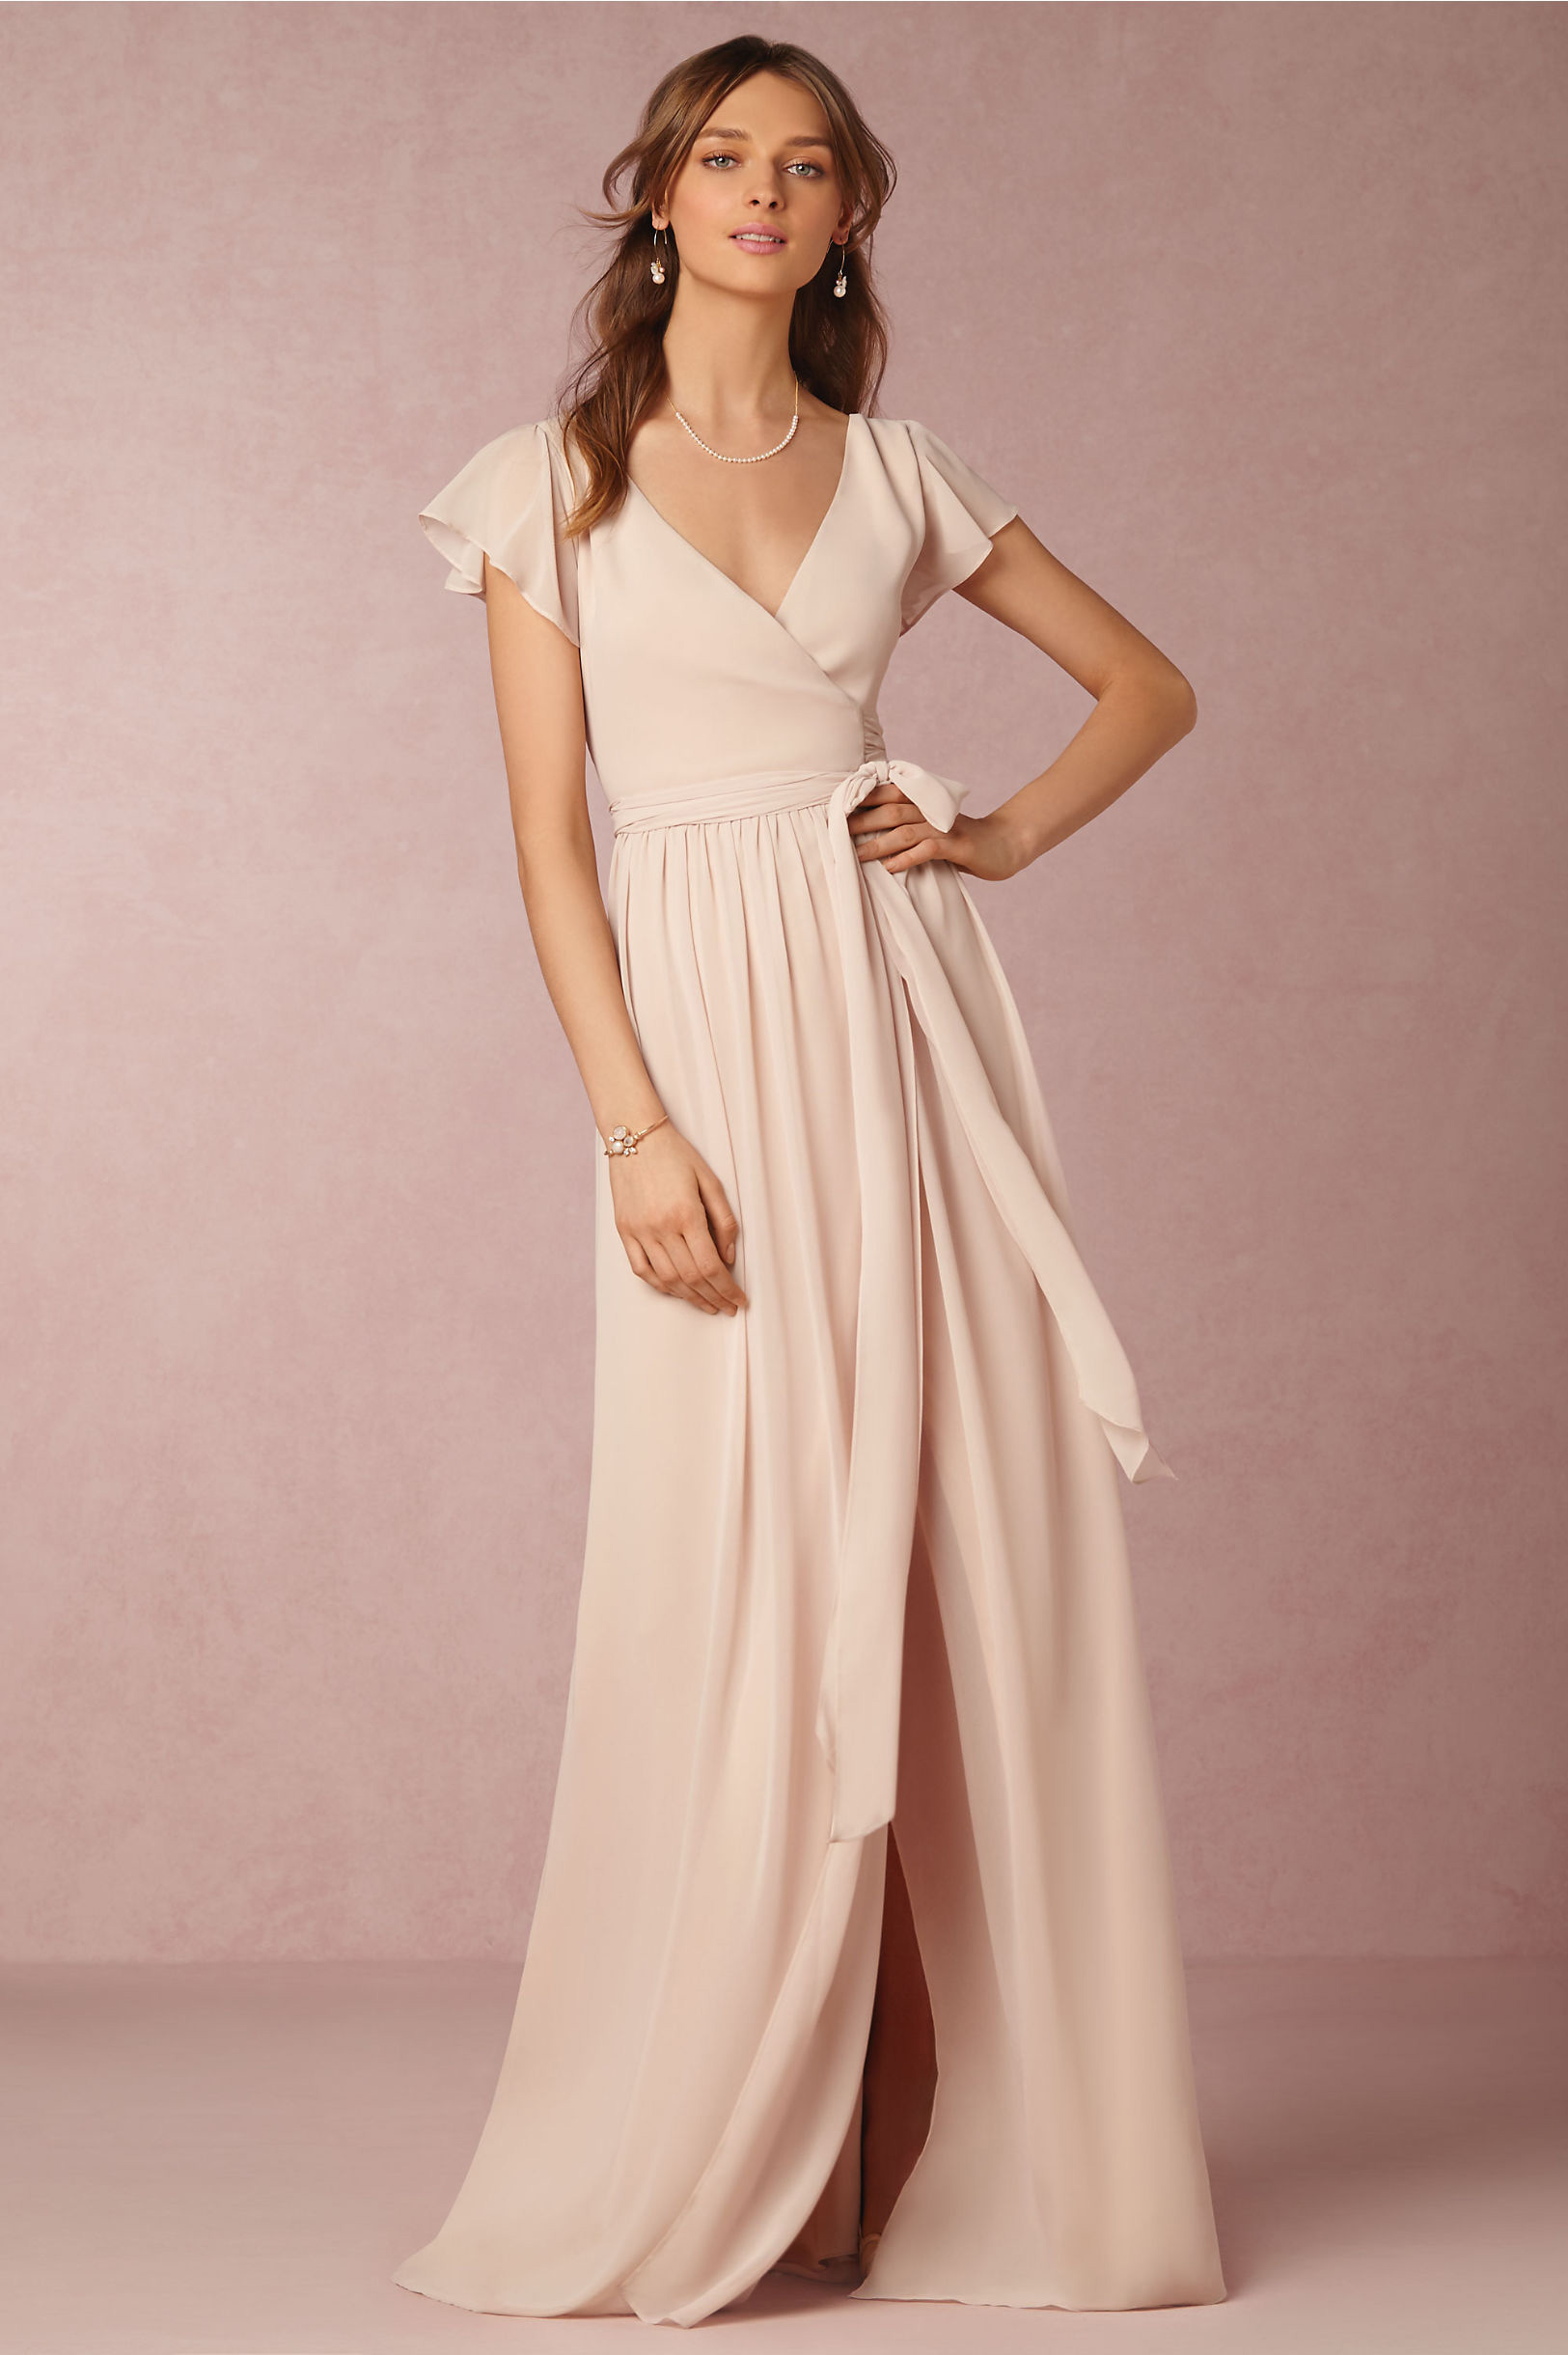 Zola wrap bridesmaid dress with short sleeves Joanna August BHLDN